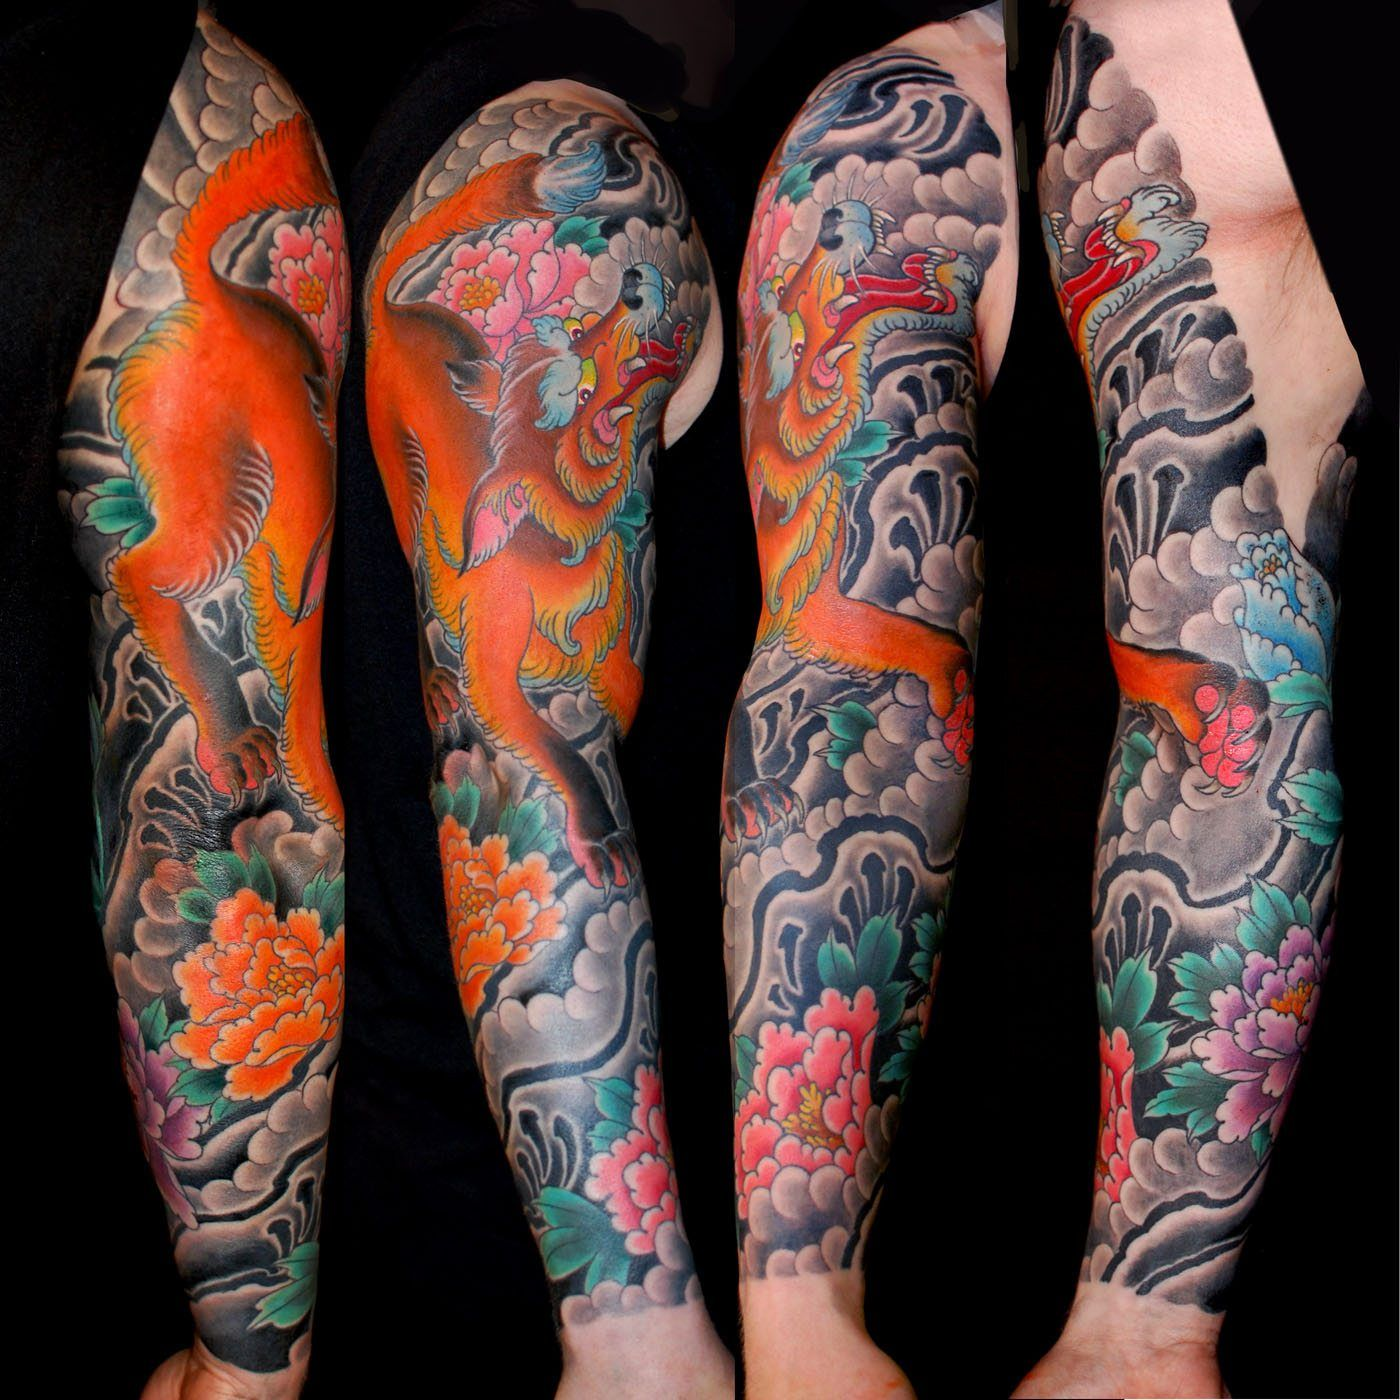 eb290c3d4e37b Animals Flowers Japanese Kitsune Sleeve Tattoo | Cute Animal Tattoo ...